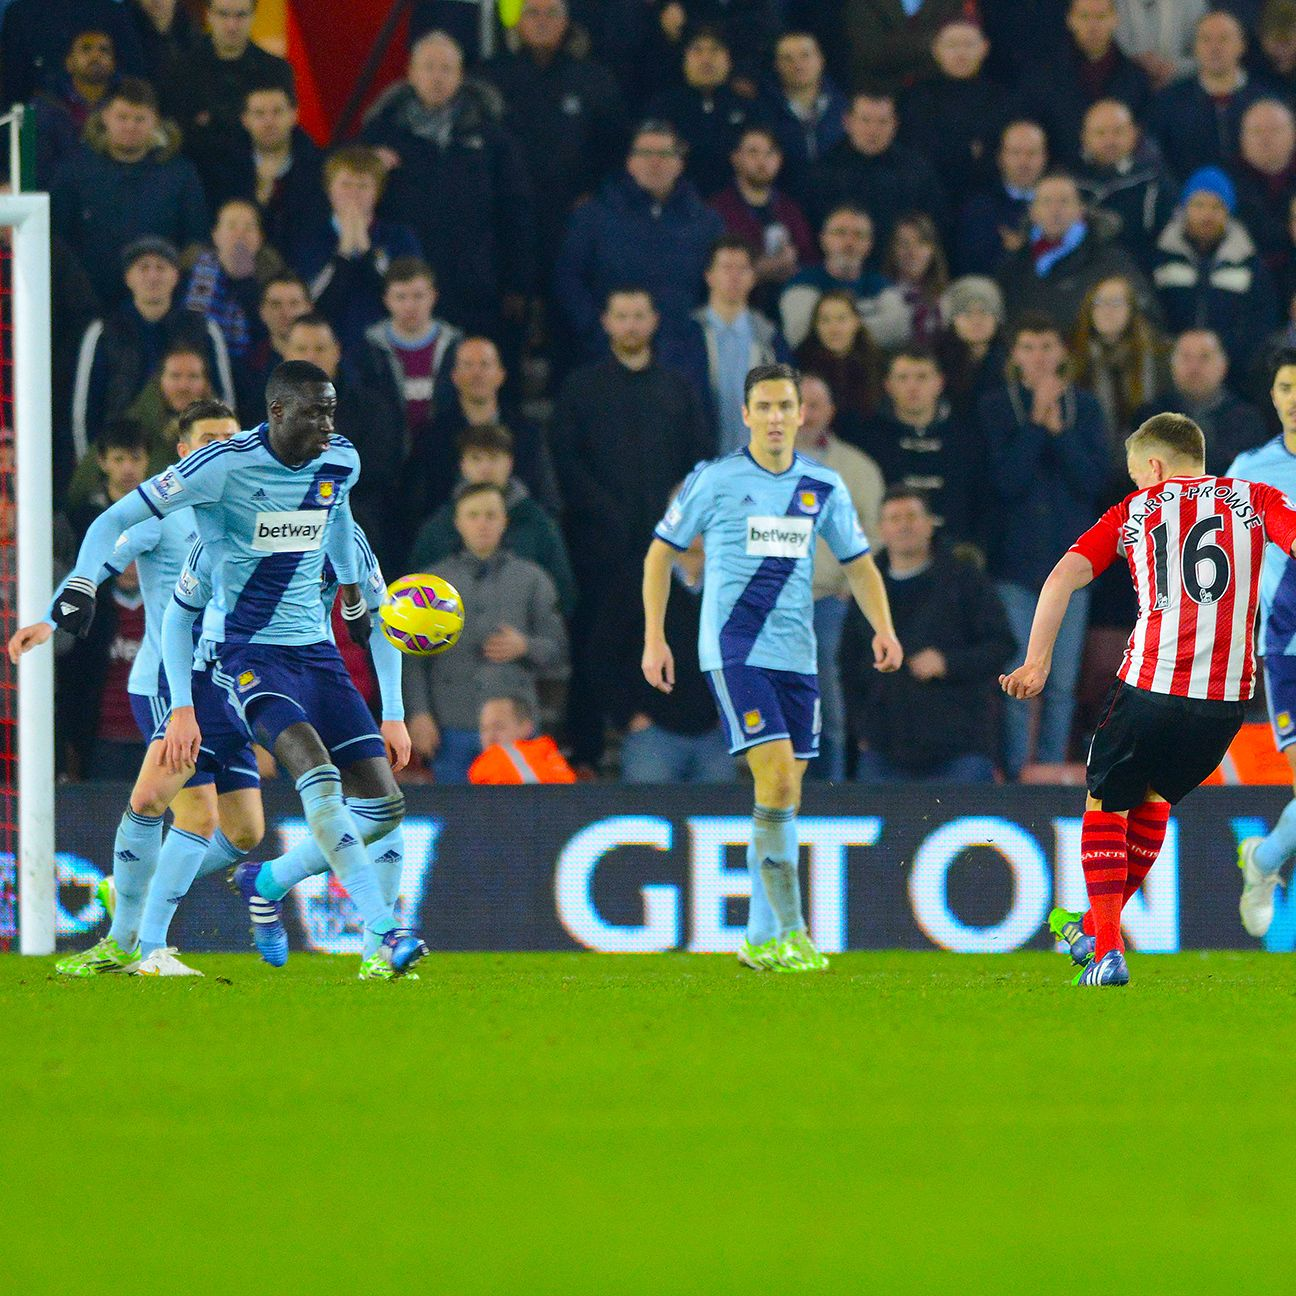 Southampton were unable to breach a sturdy West Ham defence on Wednesday.